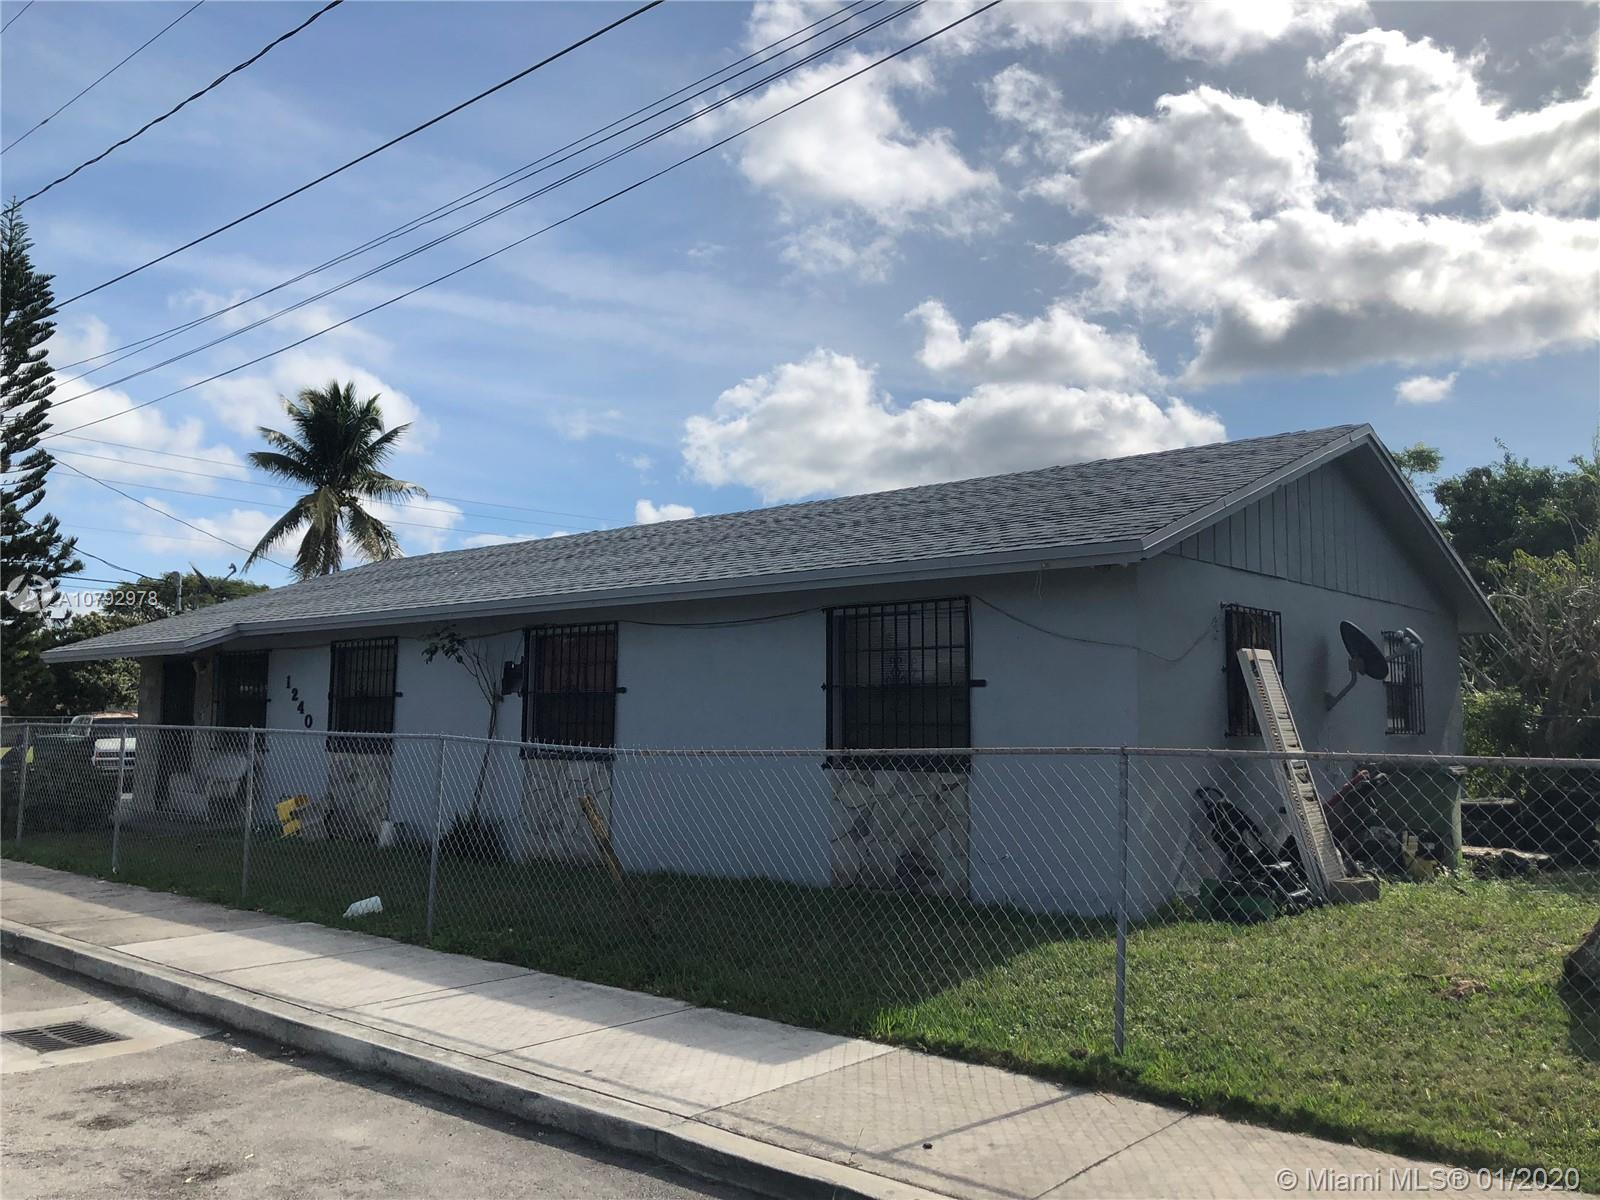 1240 NW 6th Ave, Florida City, FL 33034